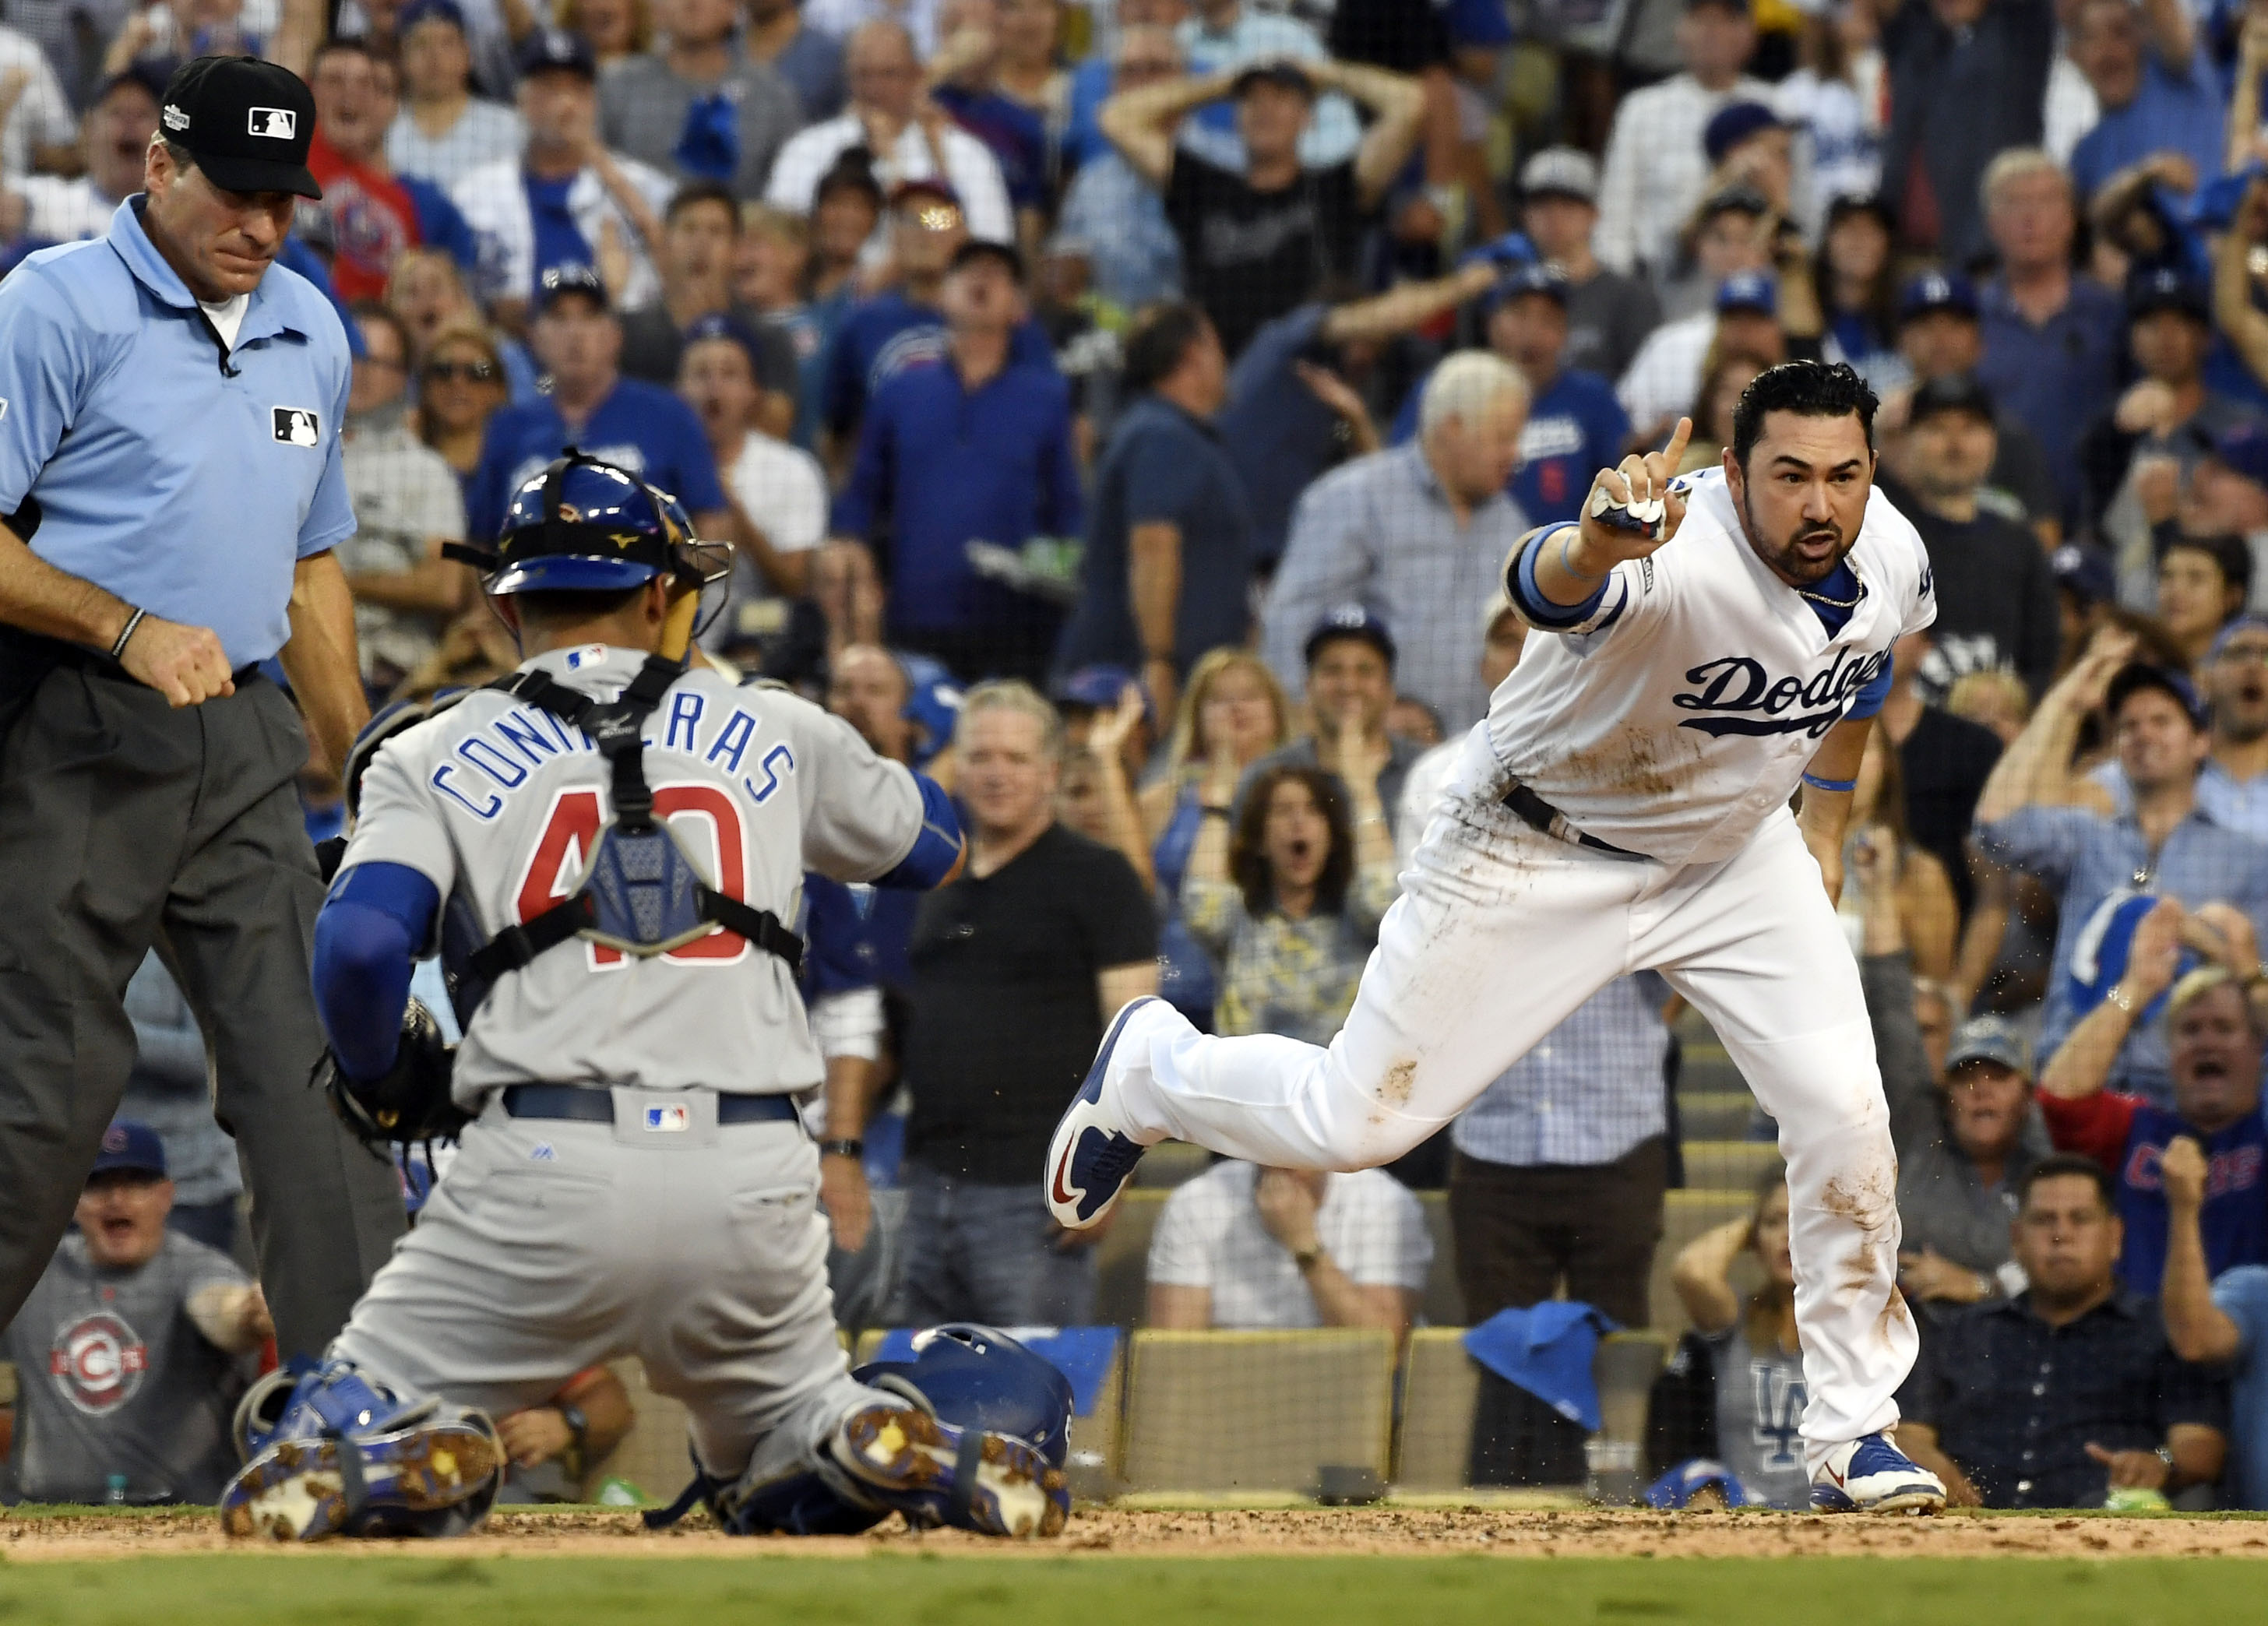 9619257-mlb-nlcs-chicago-cubs-at-los-angeles-dodgers